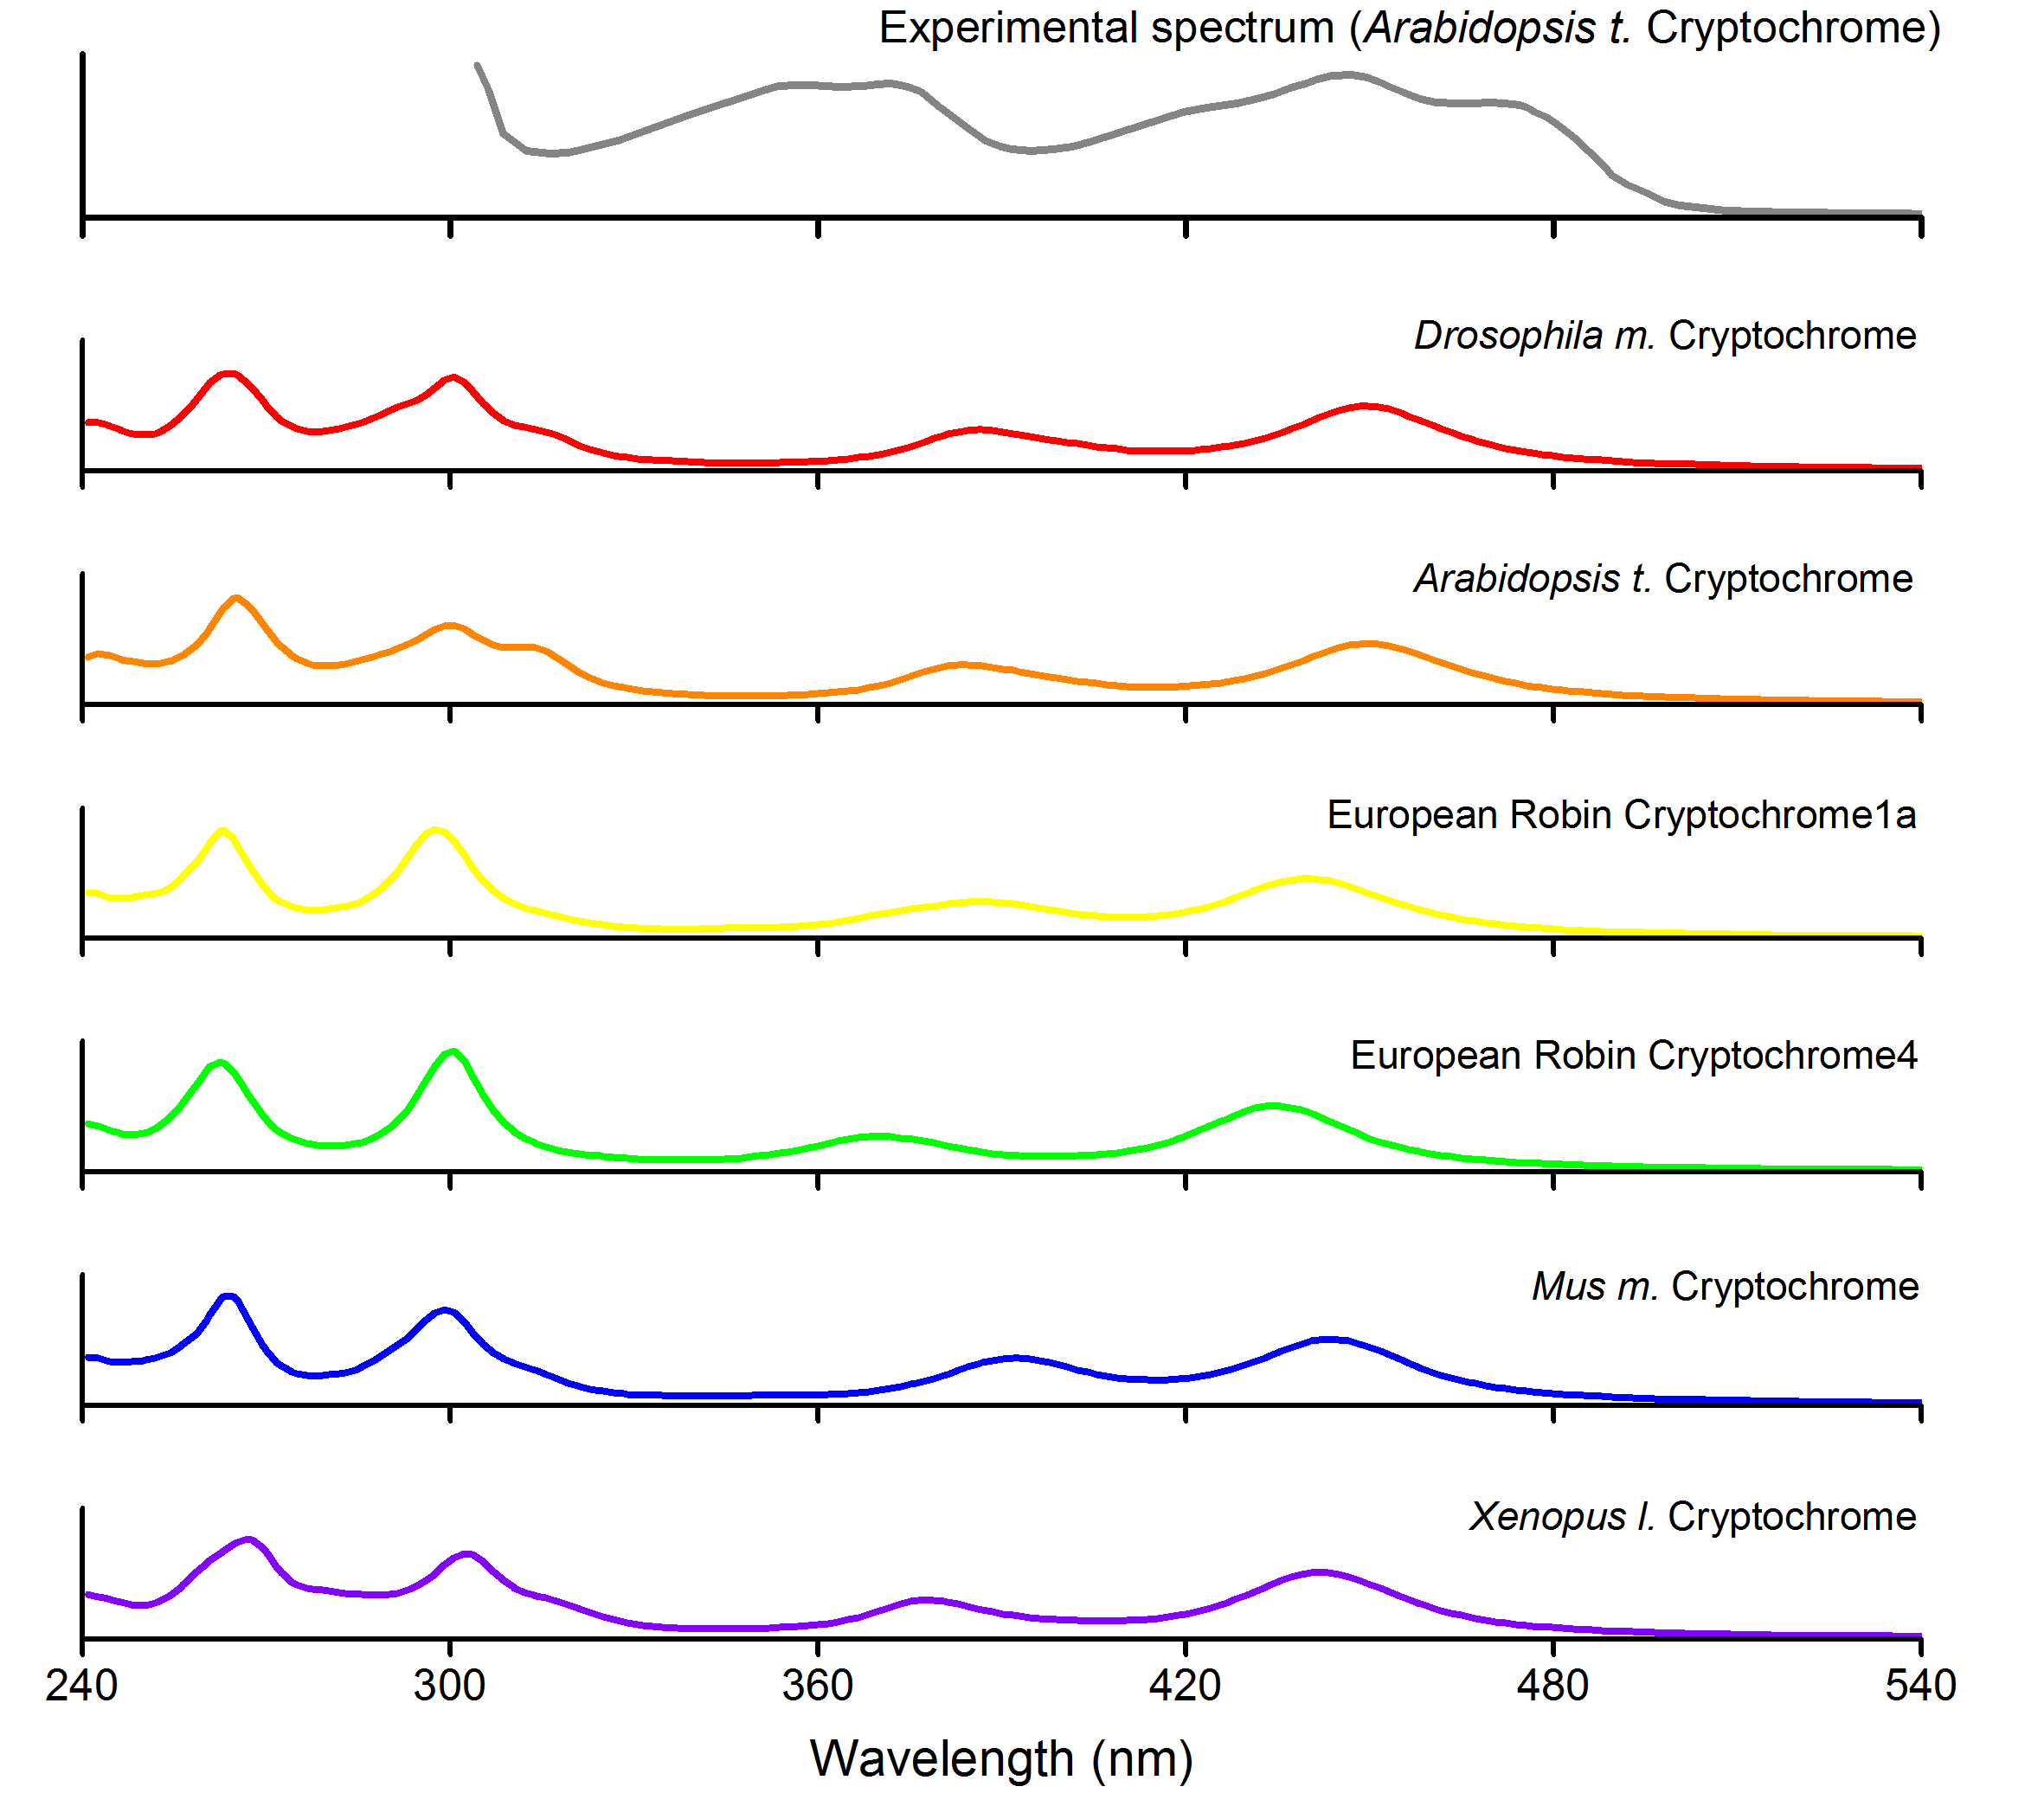 Calculated and experimental spectra of cryptochromes